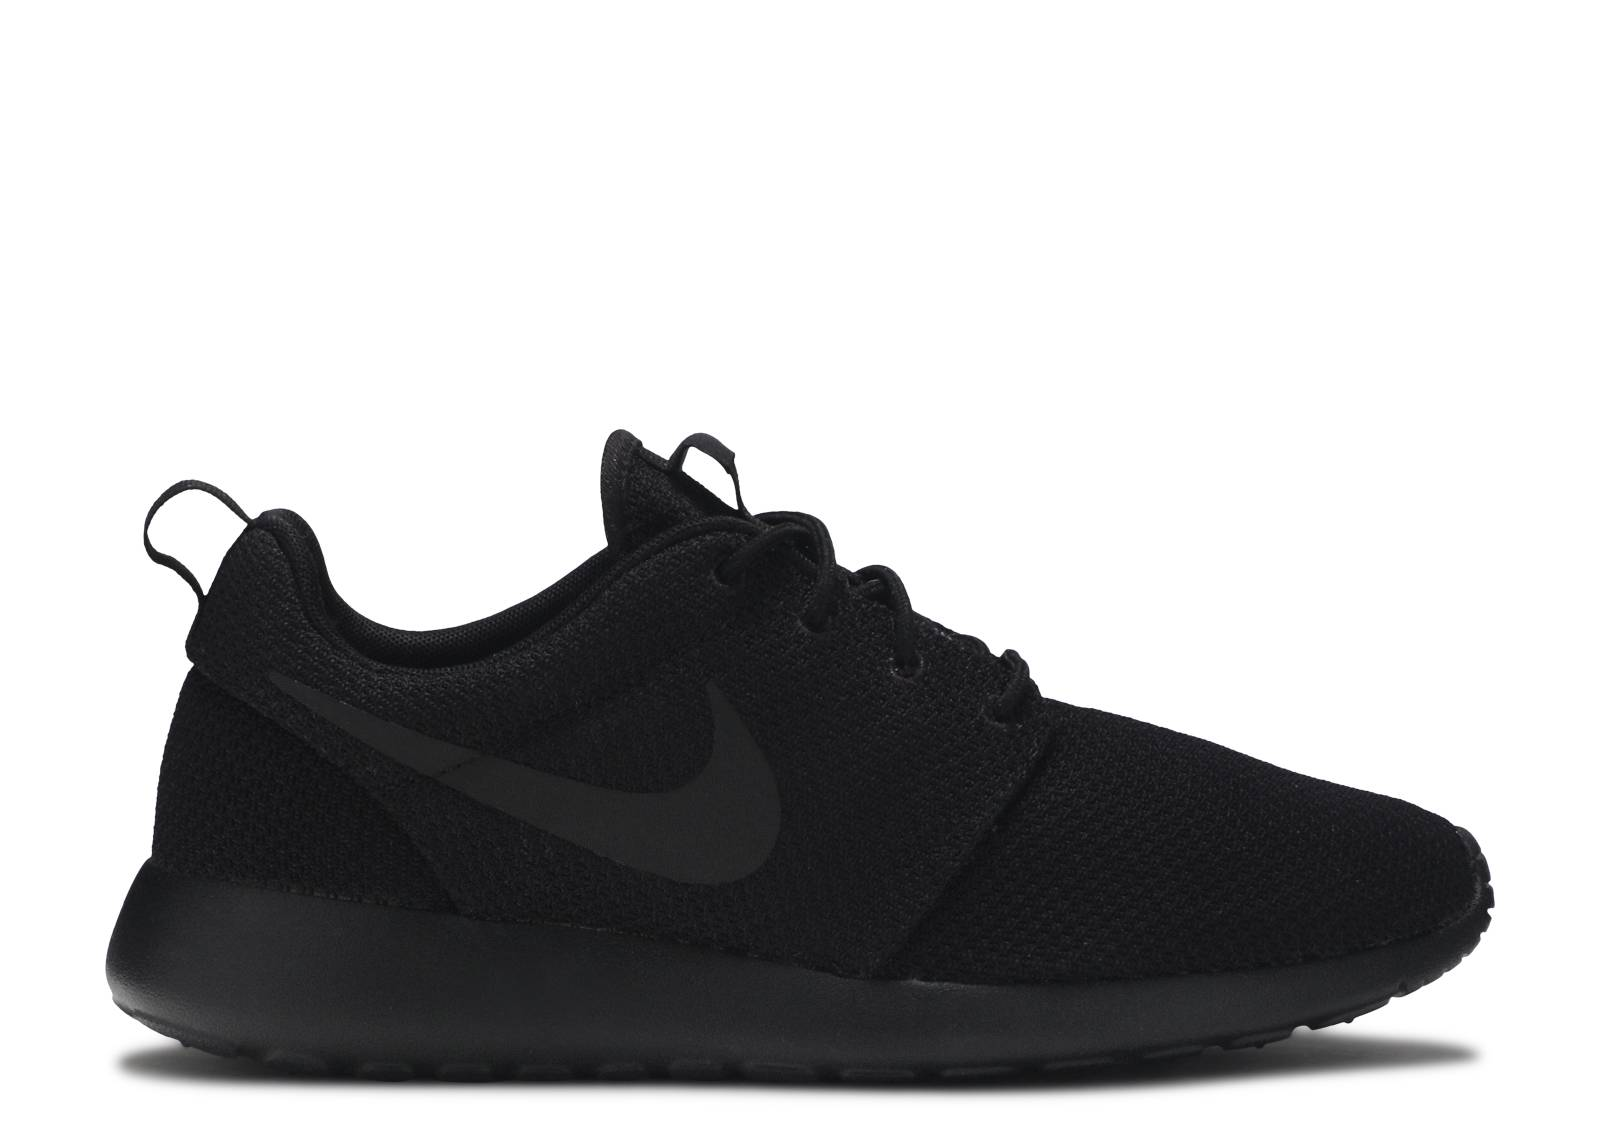 sale retailer 142da f2616 Roshe Run - Nike Running - Nike   Flight Club